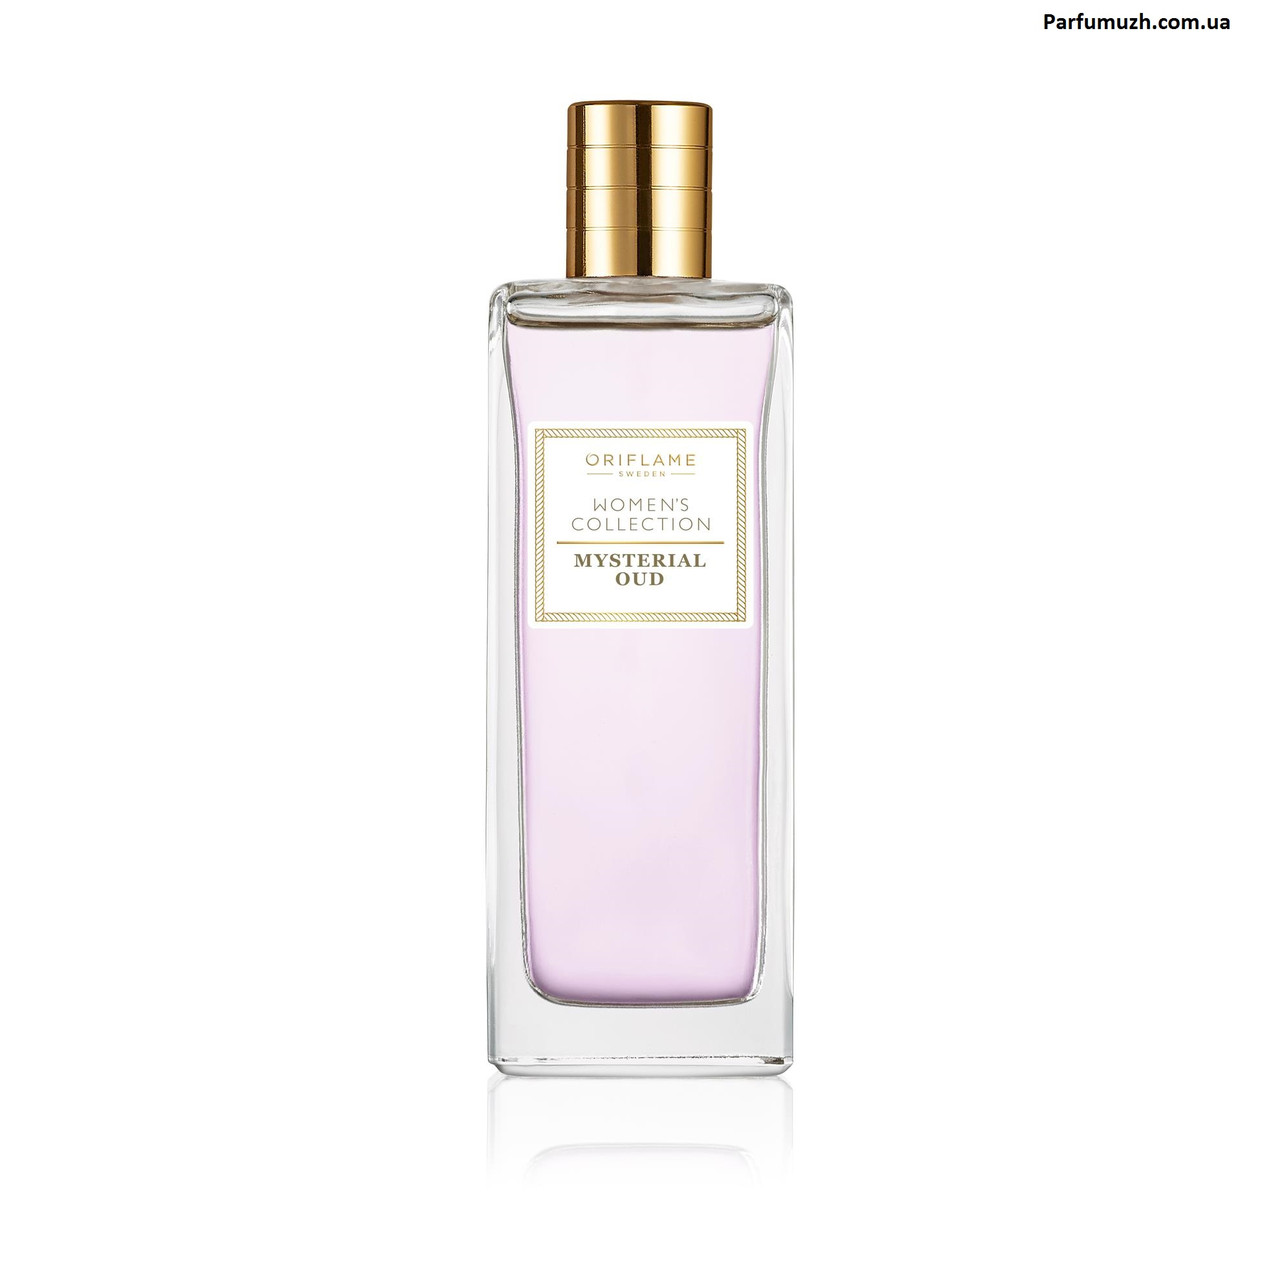 Туалетная вода Women's Collection Mysterial Oud Oriflame